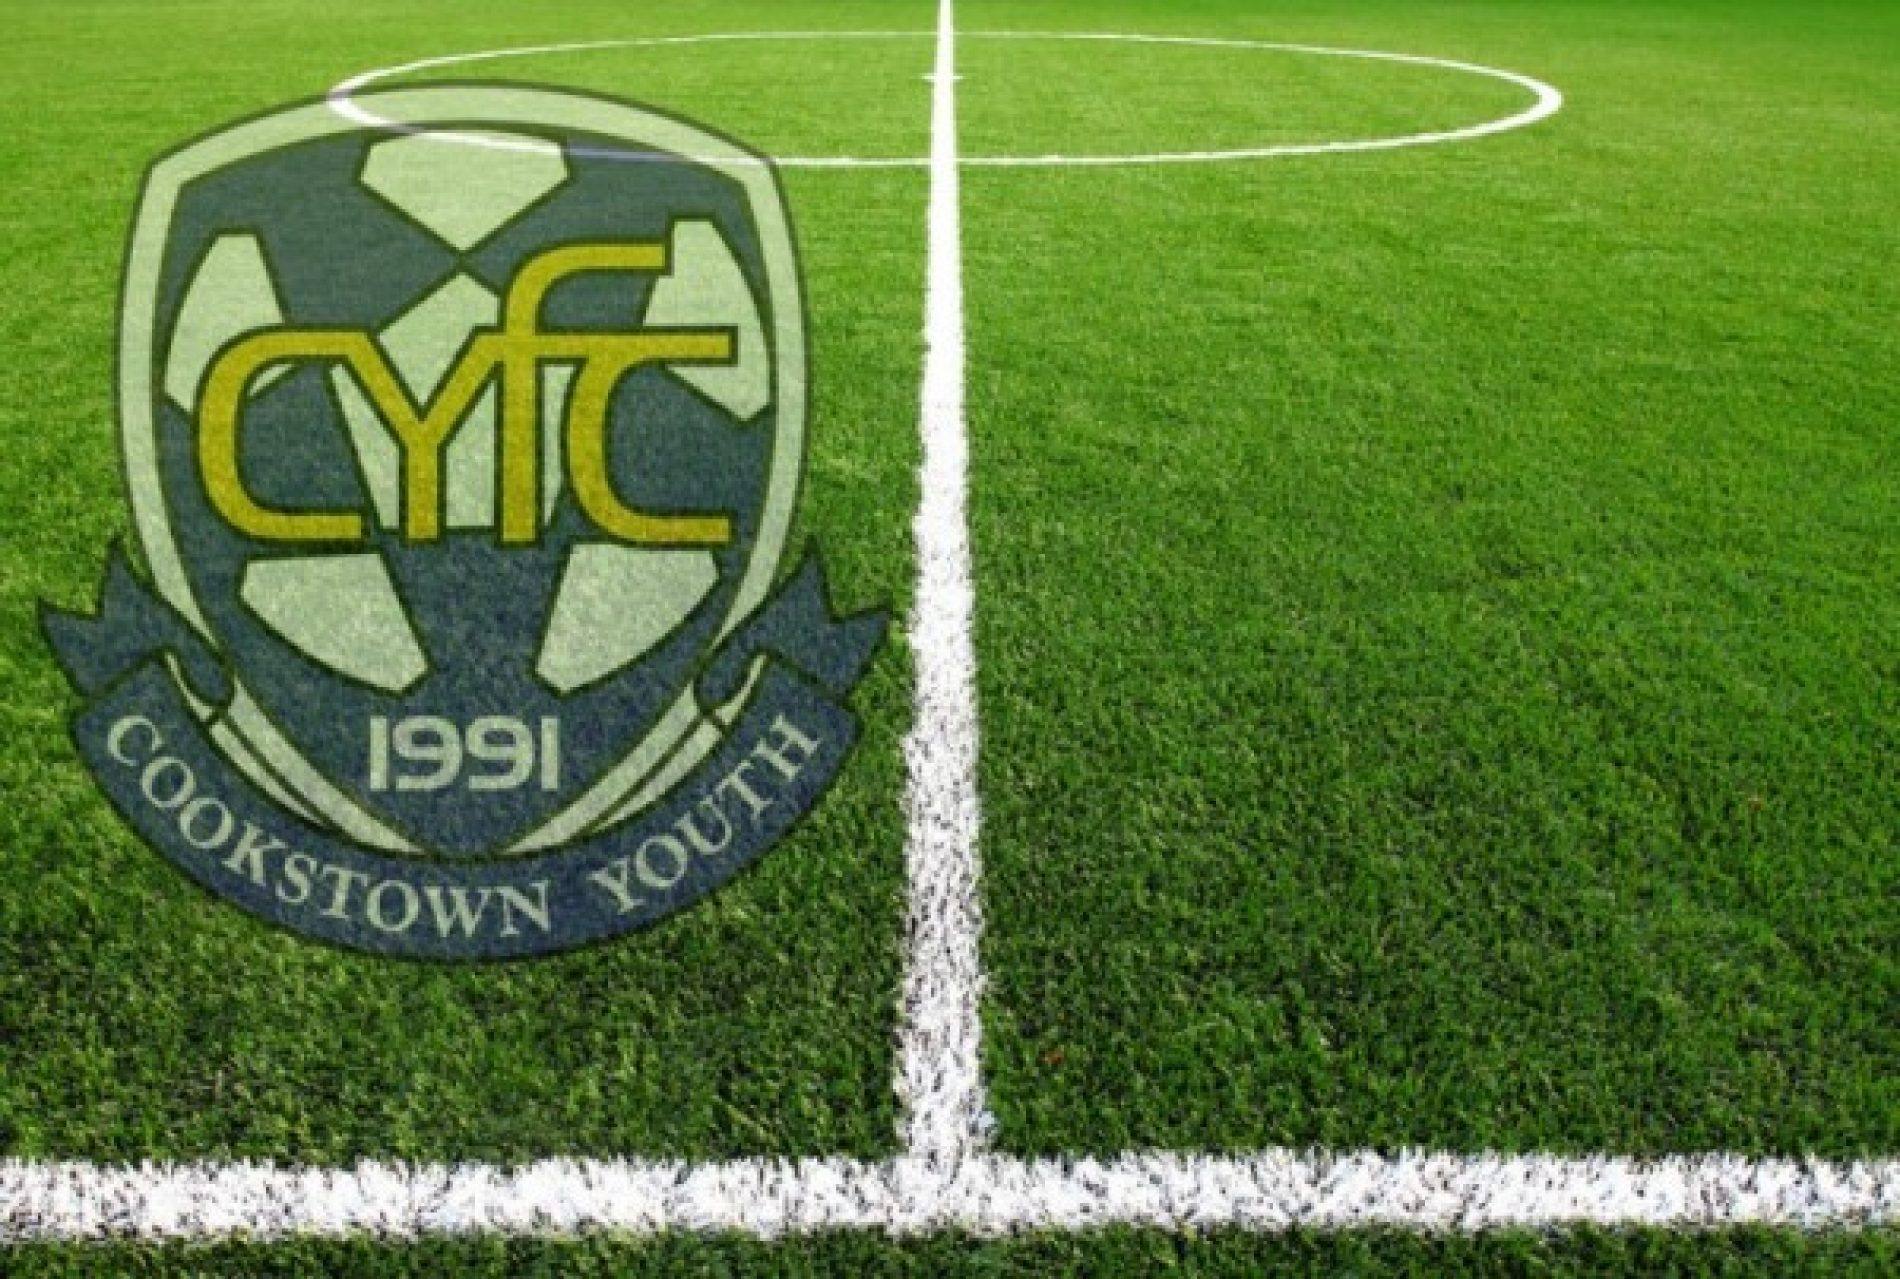 CYFC MATCH REPORT FROM EASTER SATURDAY 15th APRIL 2017